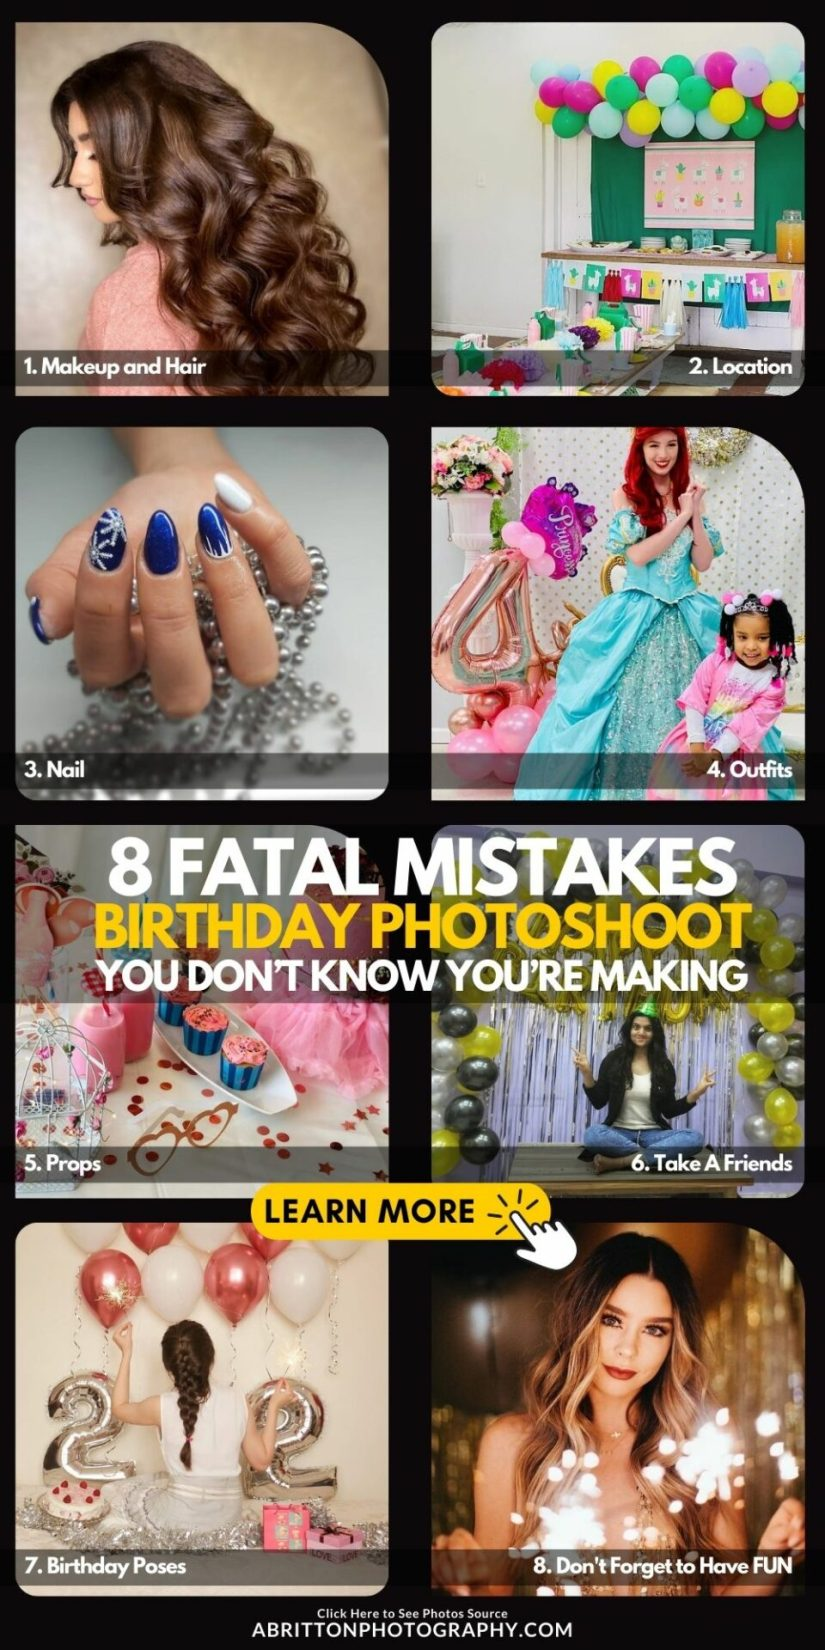 8 Fatal Birthday Picture Mistakes You Don't Know You're Making